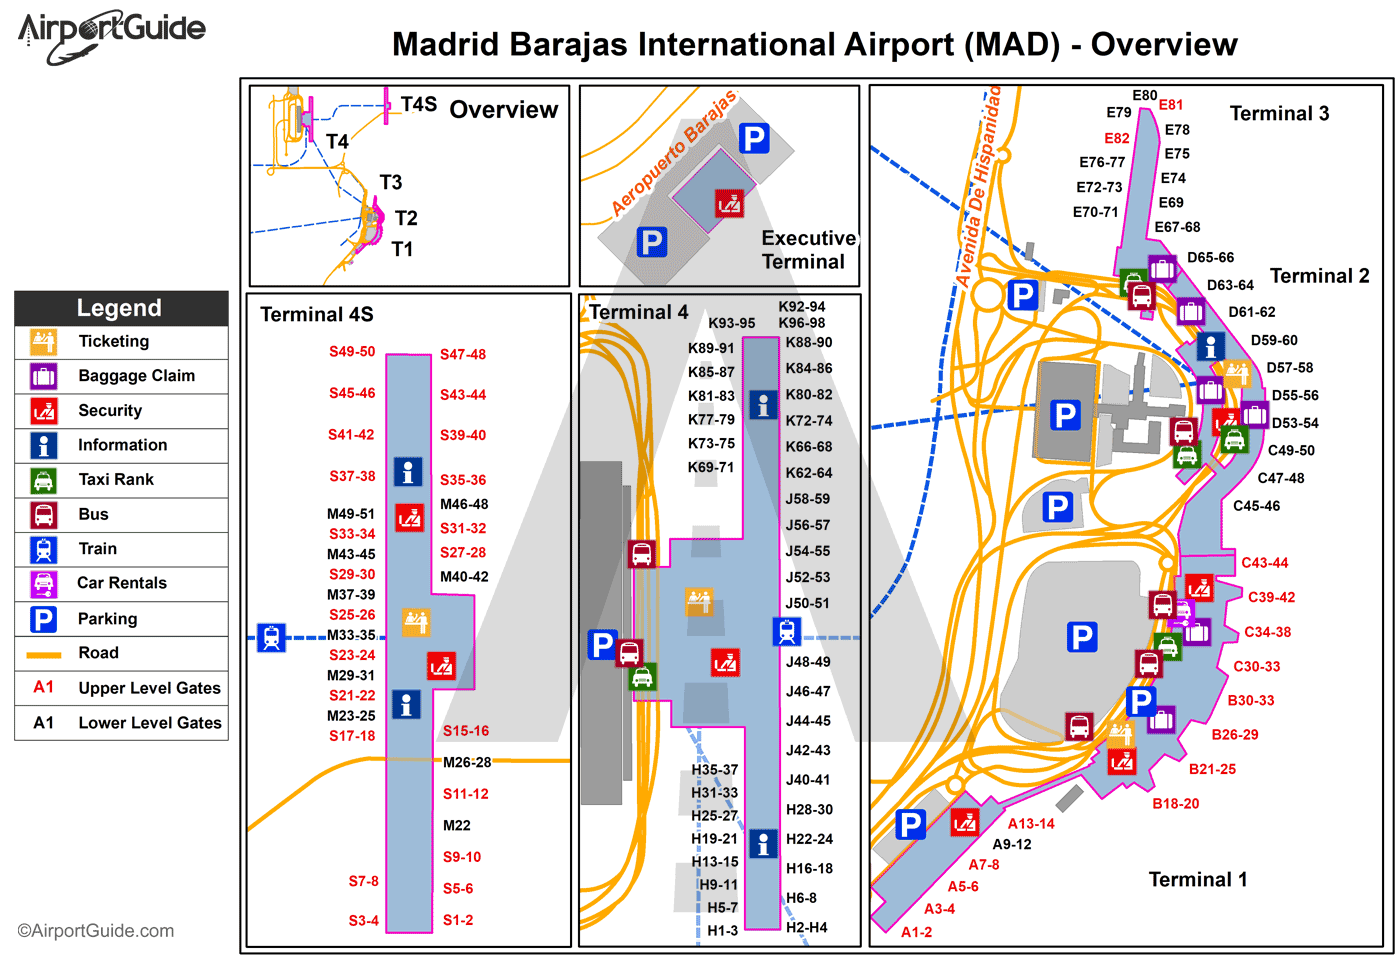 Madrid - Madrid Barajas International (MAD) Airport Terminal Map - Overview